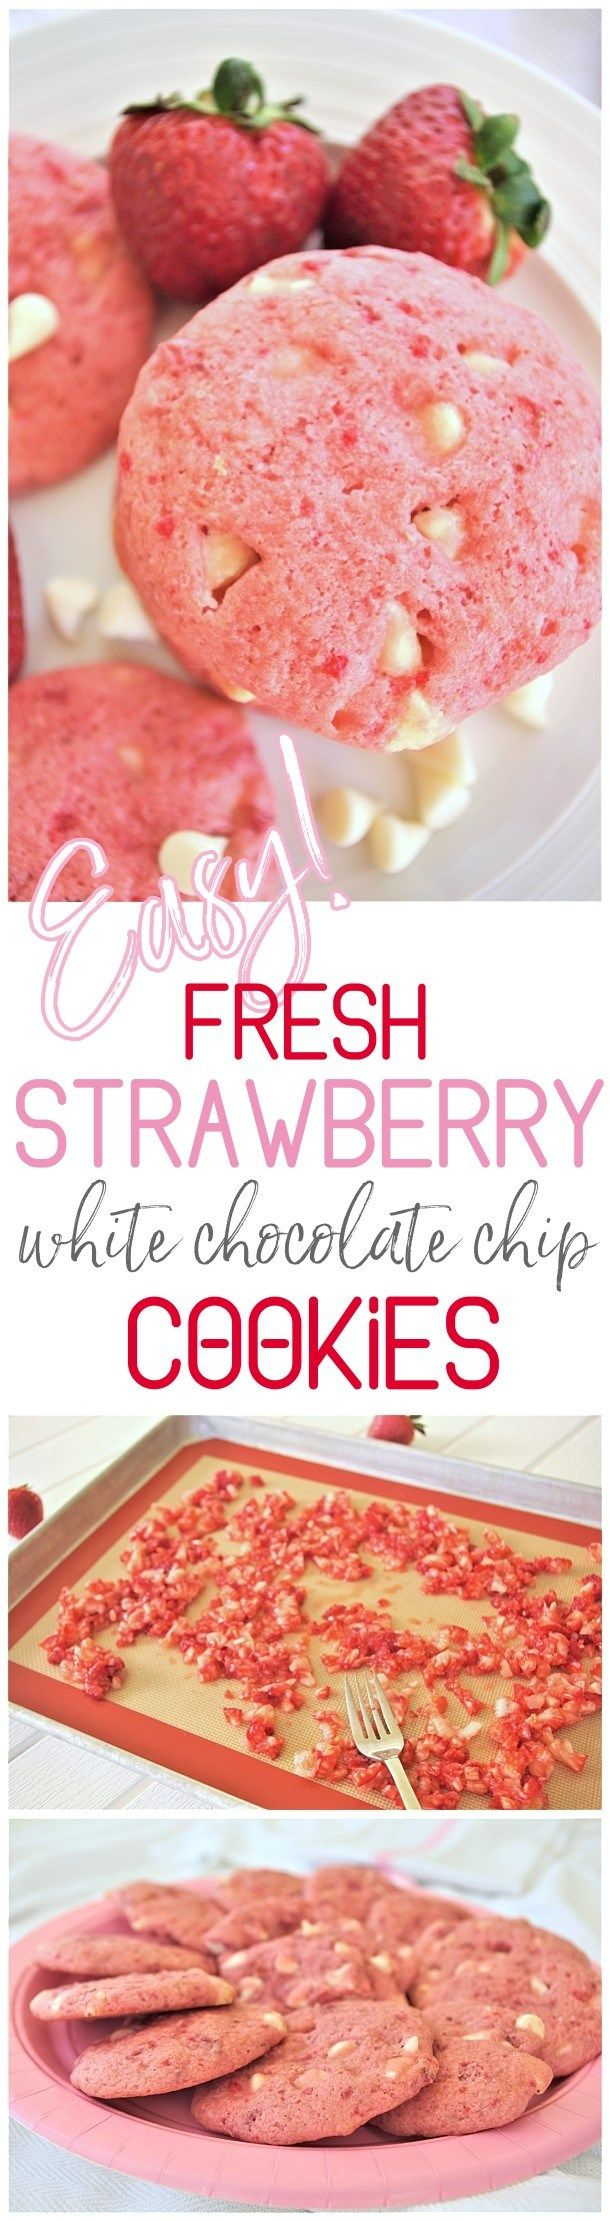 Fresh Strawberry White Chocolate Chip Cookies Dessert Easy Yummy and Quick Recipe via Dreaming in DIY -This recipe is so quick, easy and PERFECT for so many occasions. Darling pink gender reveal baby girl showers, Valentine's Day desserts and gift plates, bridal shower dessert tables, any spring and summer birthday party or reason for celebration!